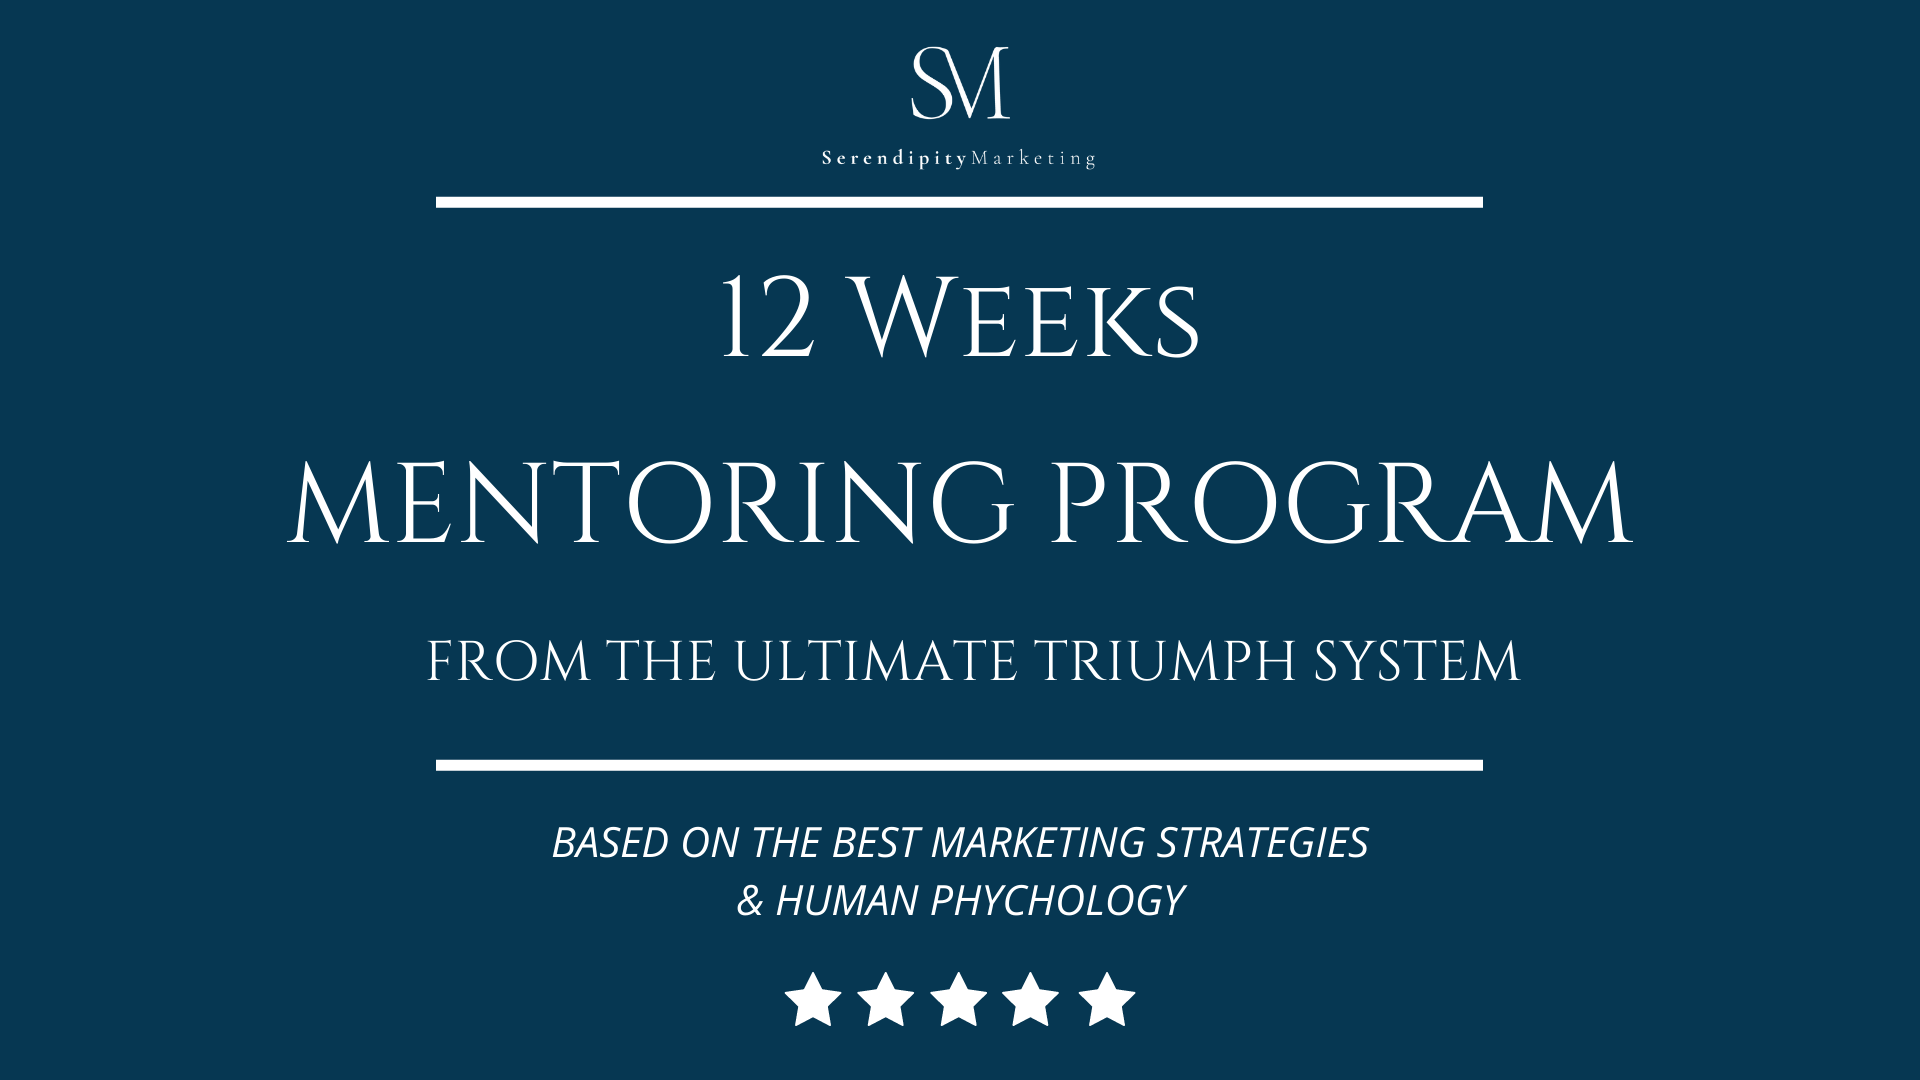 The-Ultimate-Triumph-System-Mentoring-Program